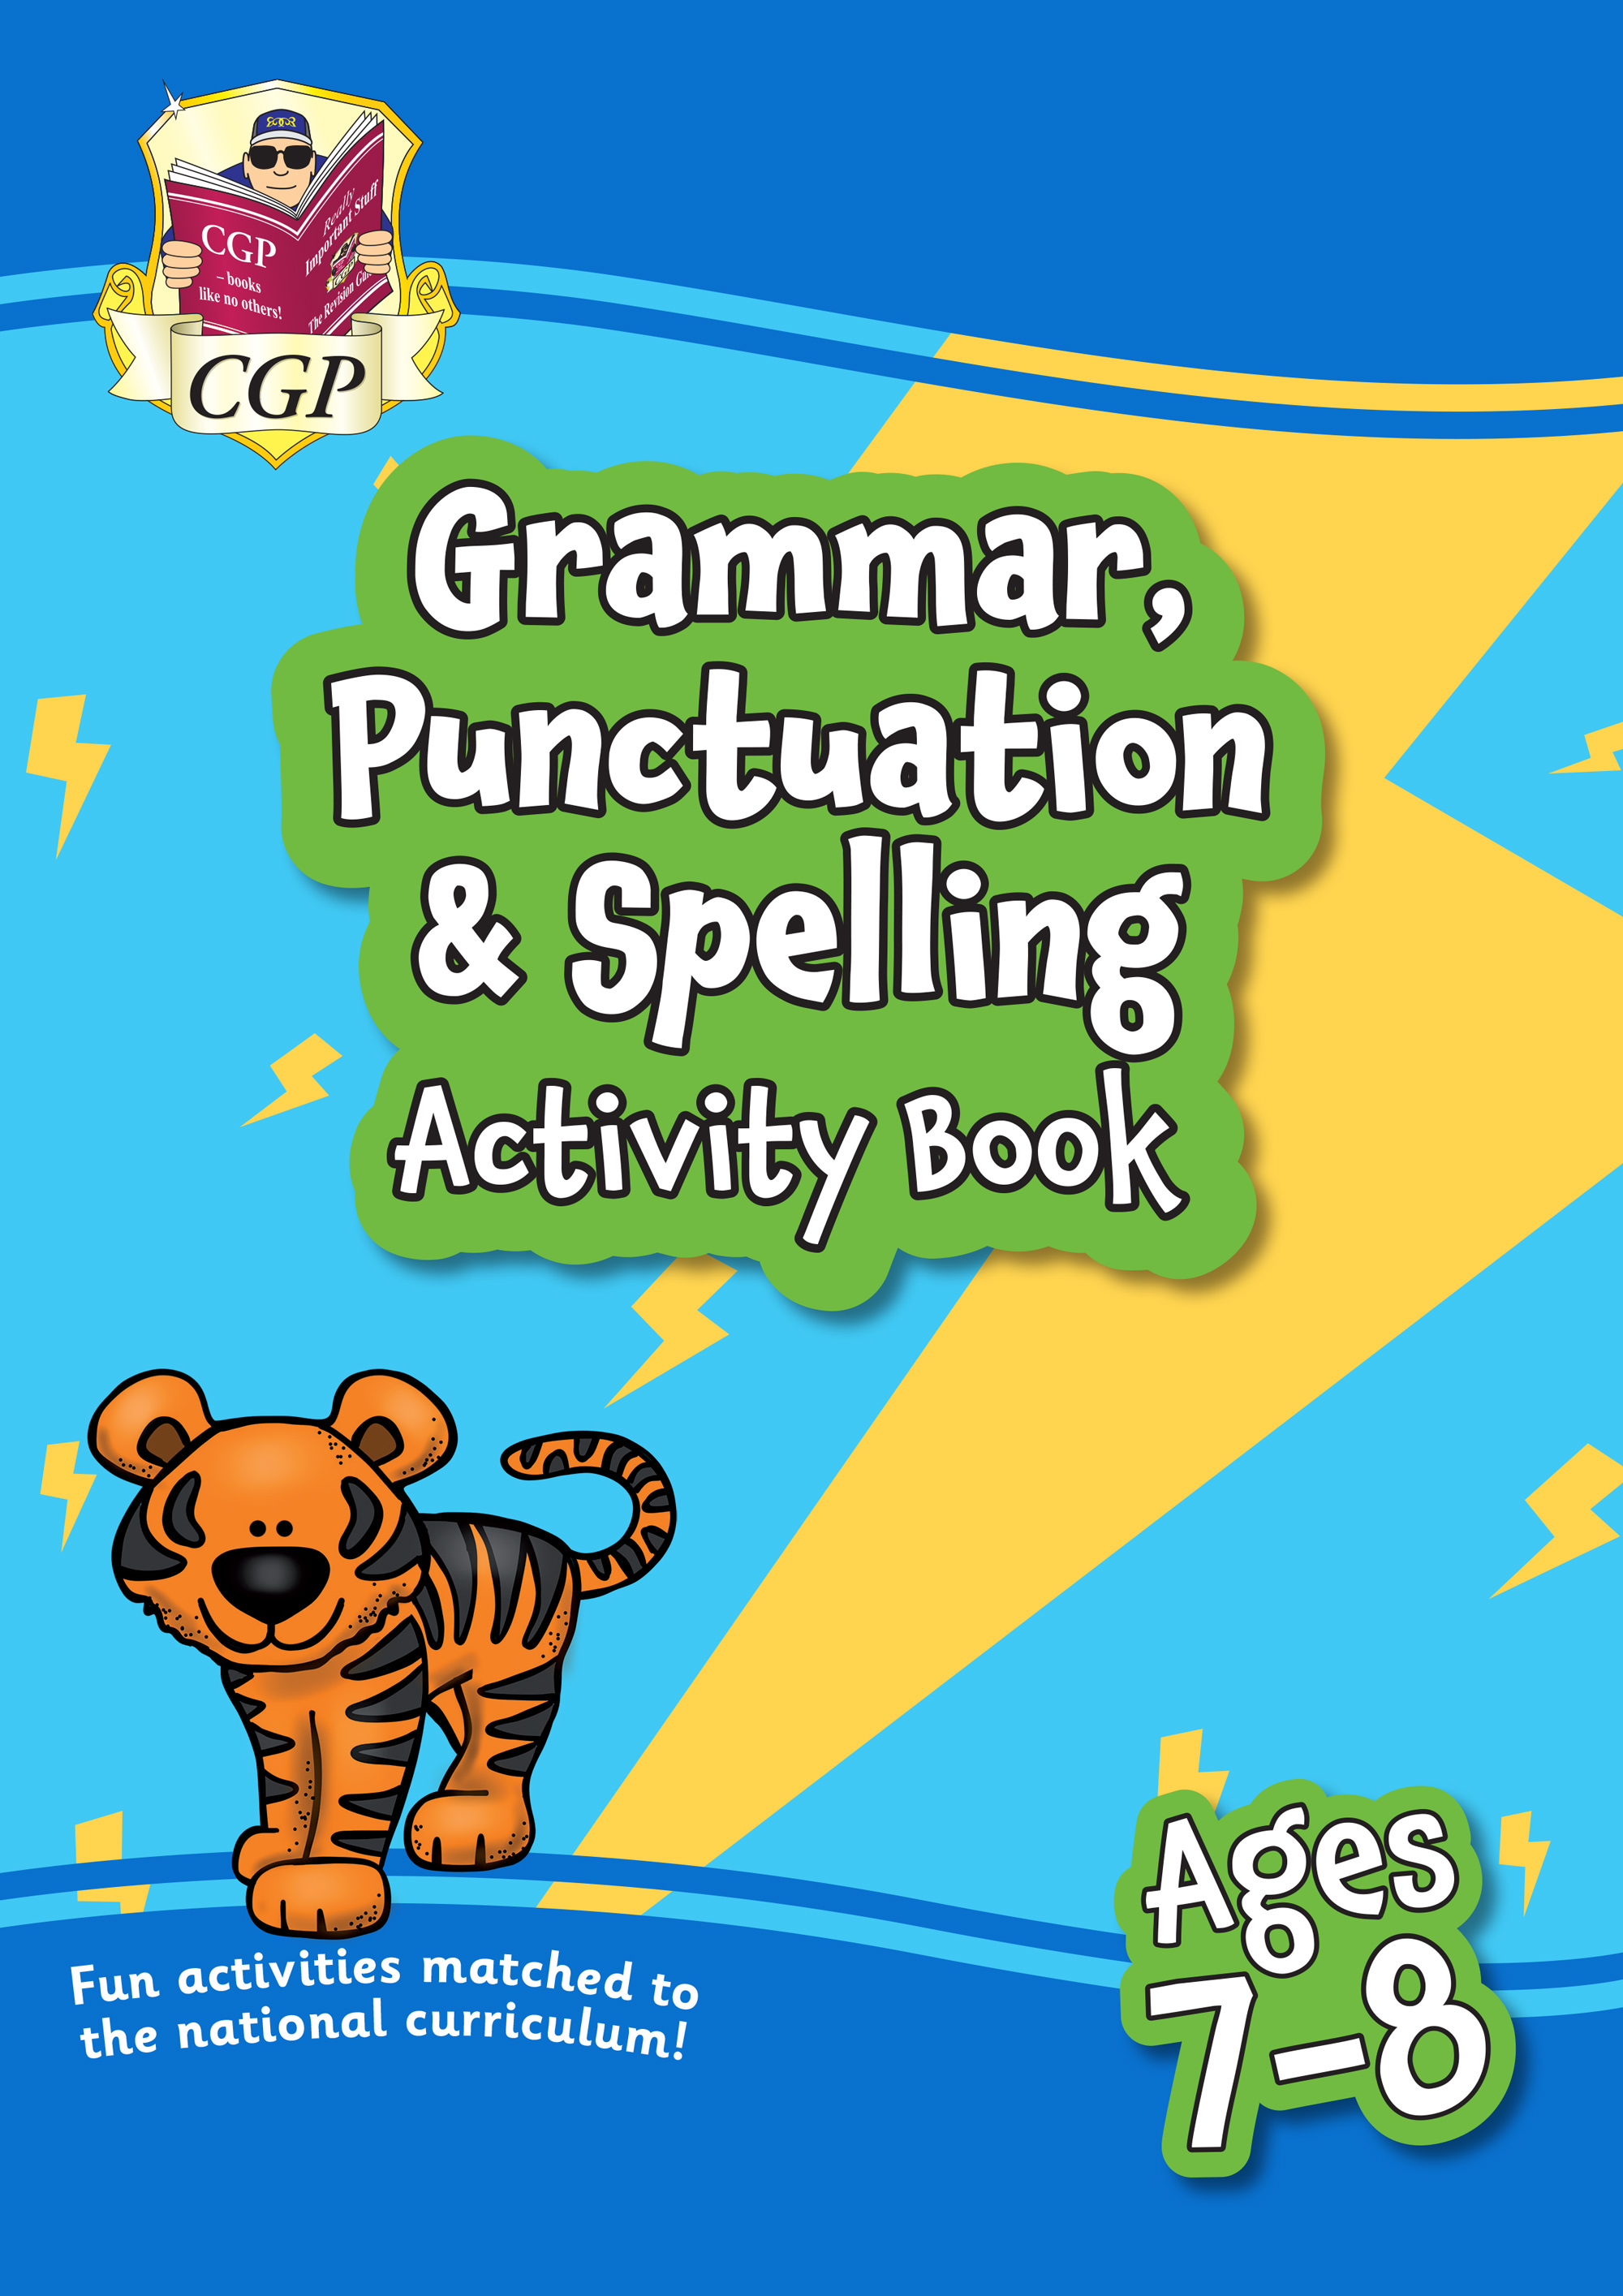 EPF3GQ21 - New Grammar, Punctuation & Spelling Home Learning Activity Book for Ages 7-8